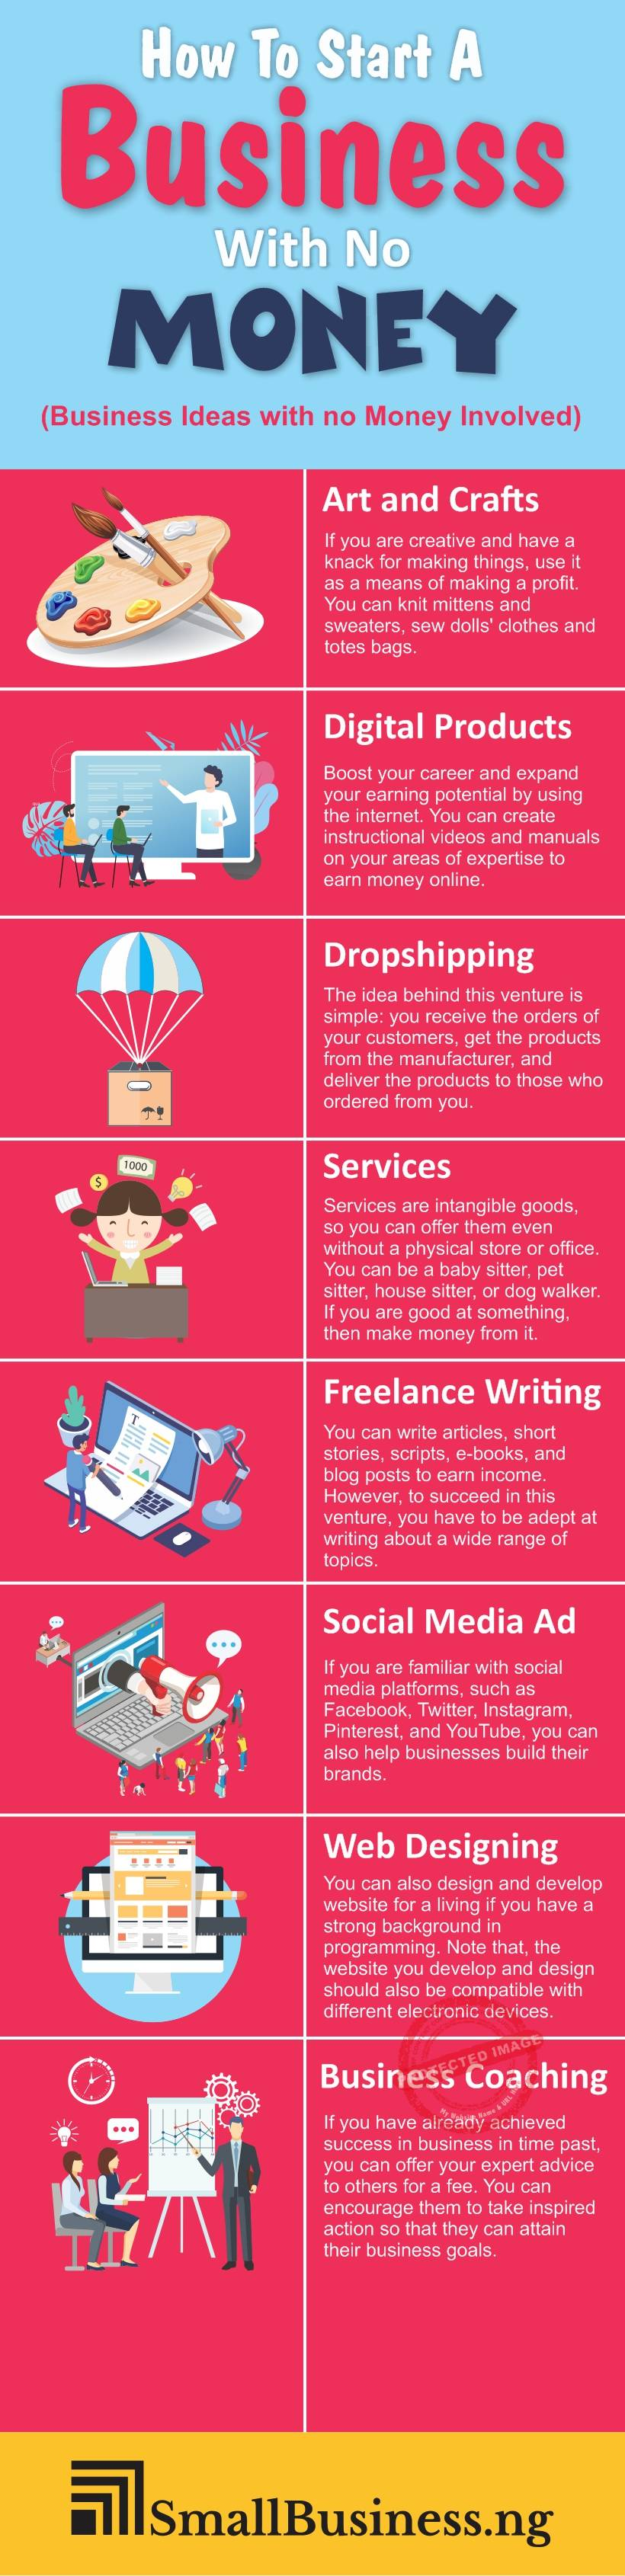 How To Start A Business With No Money Infographic